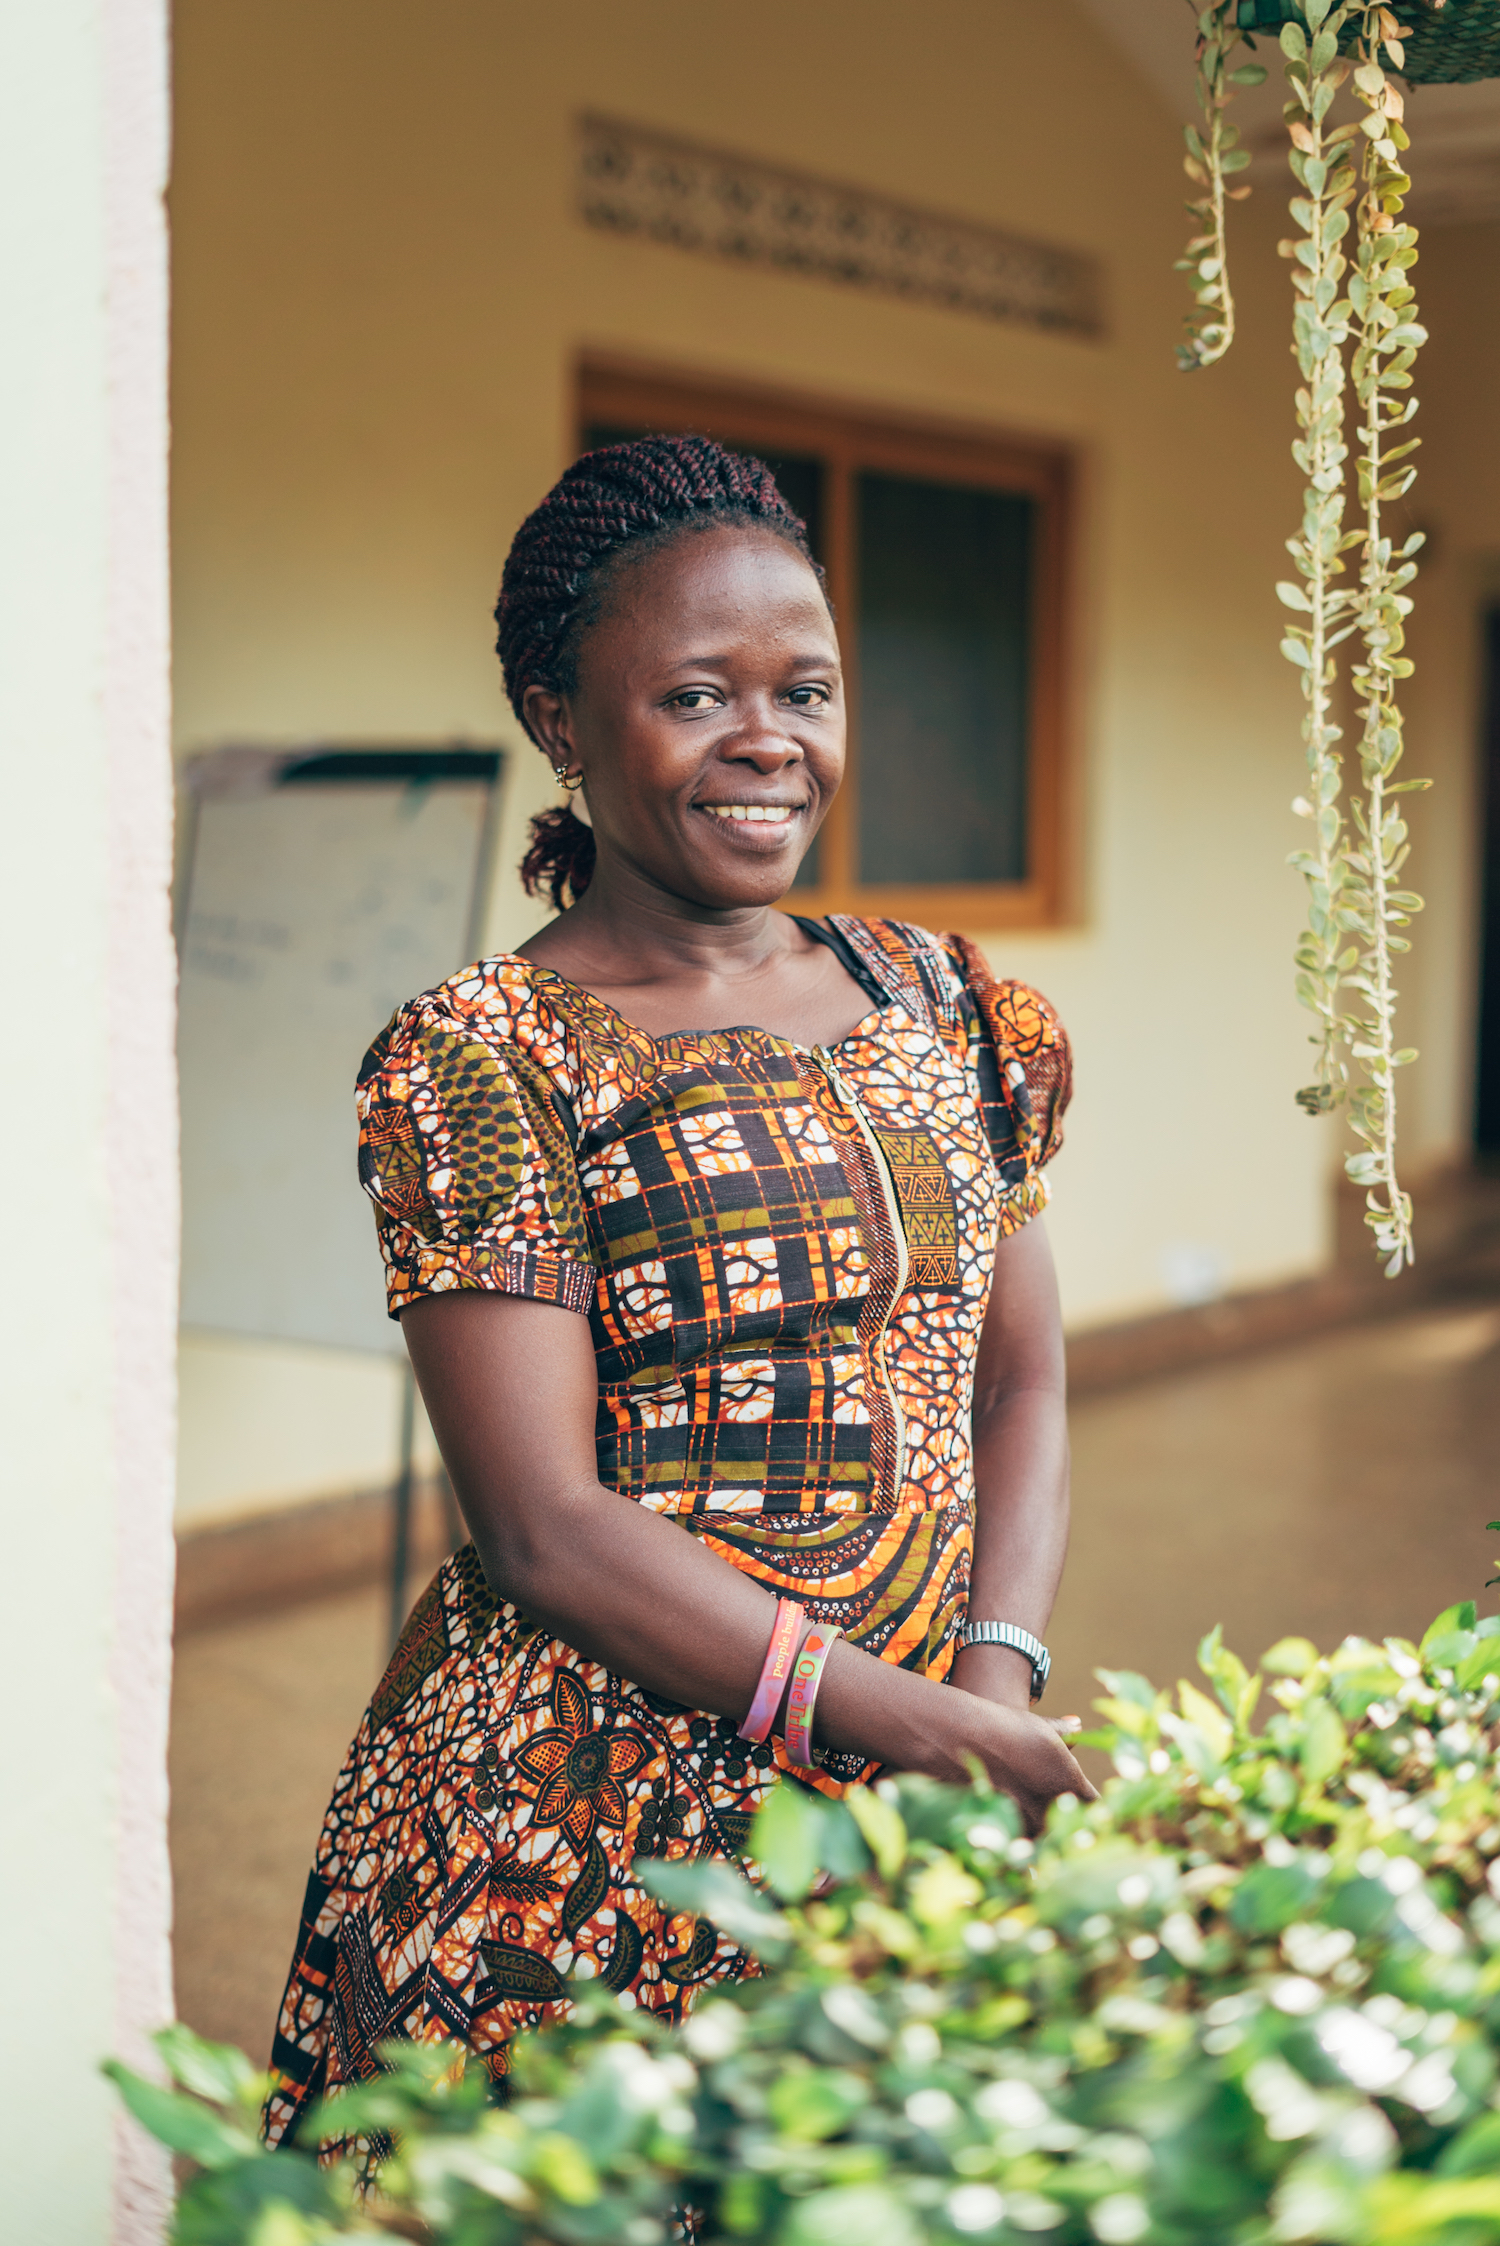 """OneTribe has made life easier for women of Pagirinya...many women now feel dignified."" - Irene"